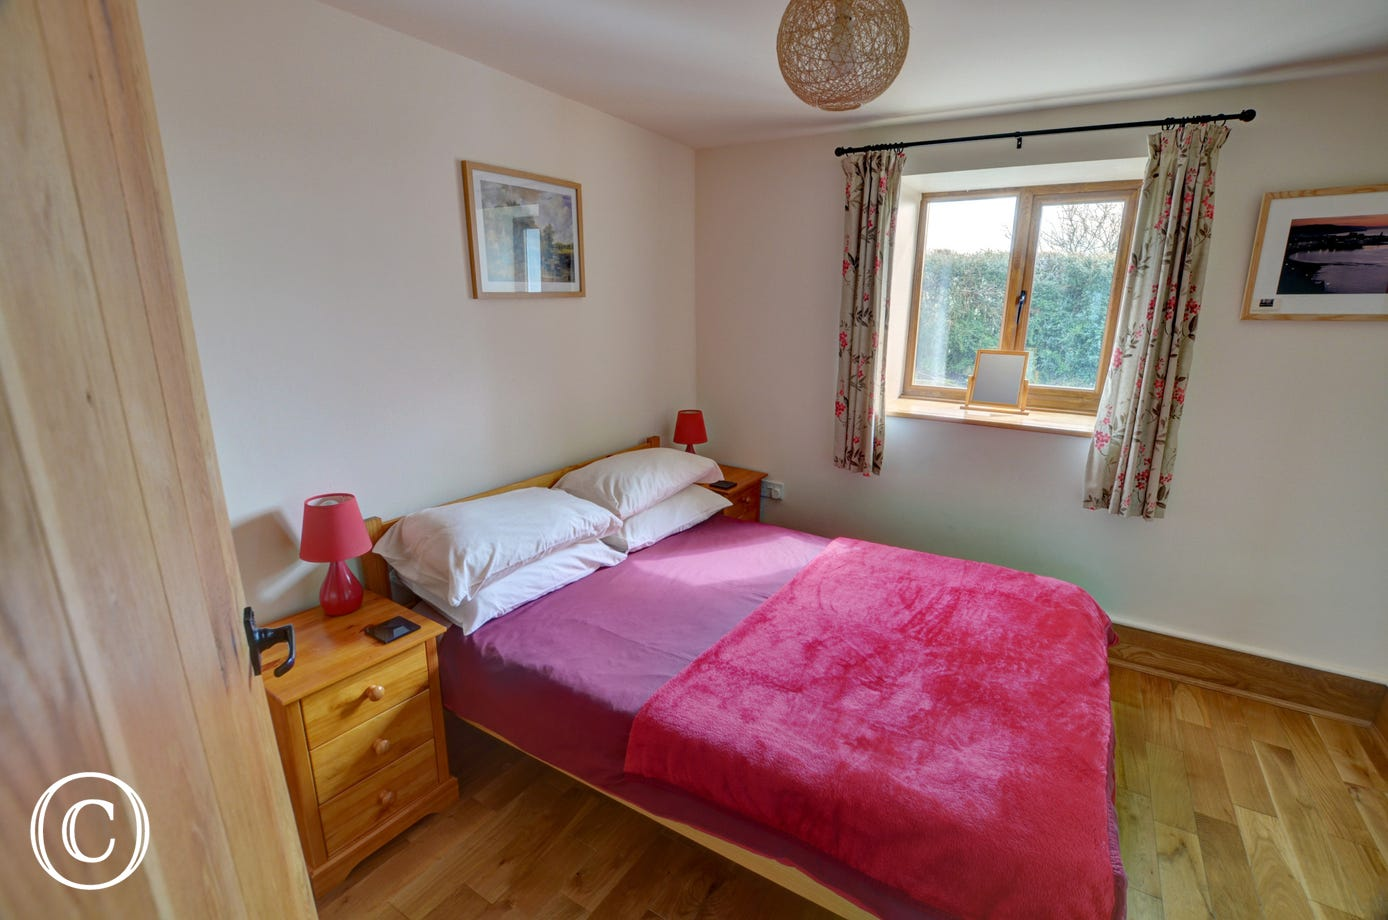 The double bedroom has a wooden bedstead and attractive furnishings